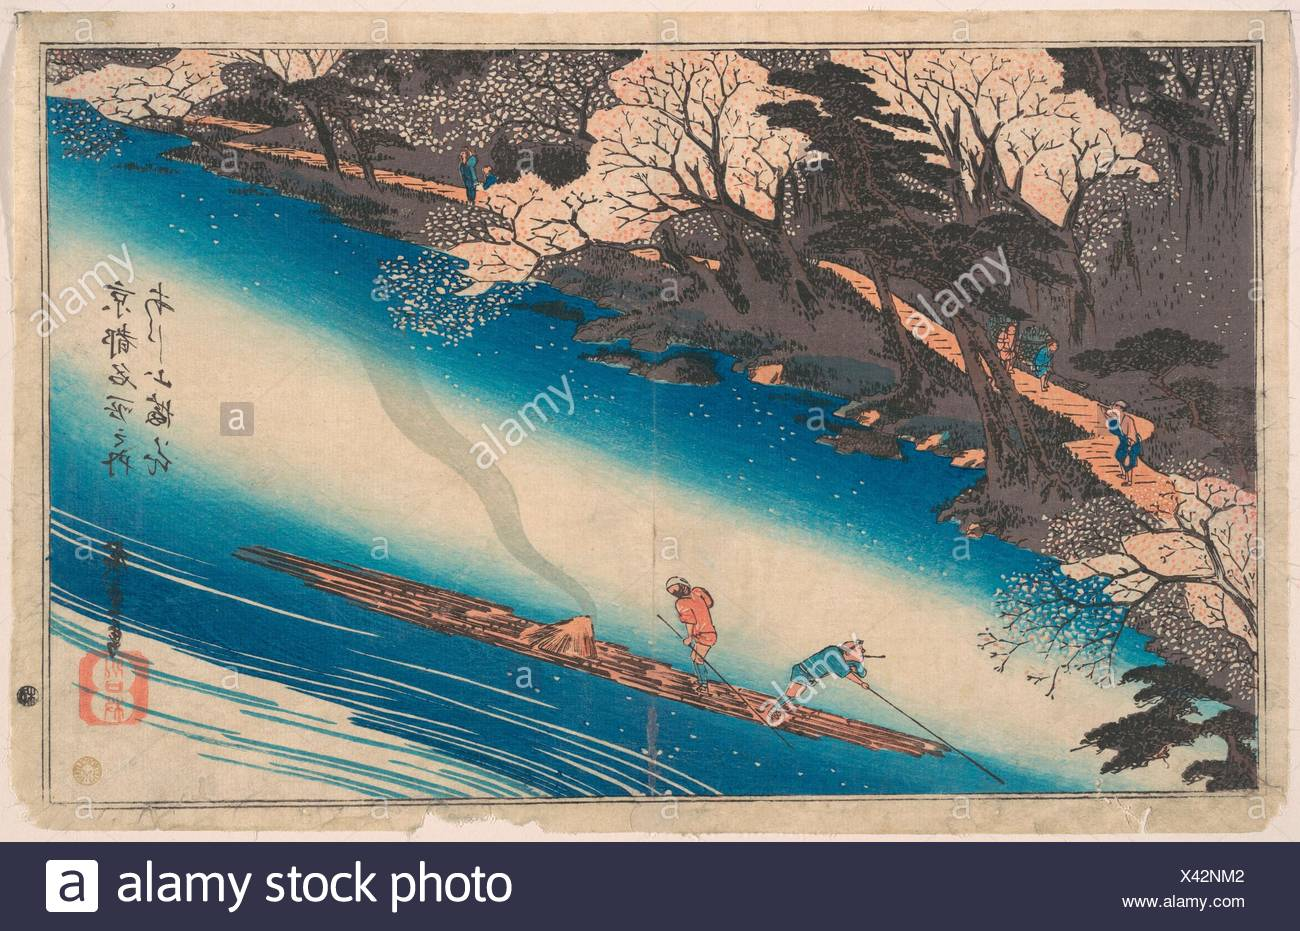 京都名所之内 あらし山満花/Cherry Blossoms at Arashiyama, from the series Famous Places of Kyoto. Artist: Utagawa Hiroshige (Japanese, - Stock Image